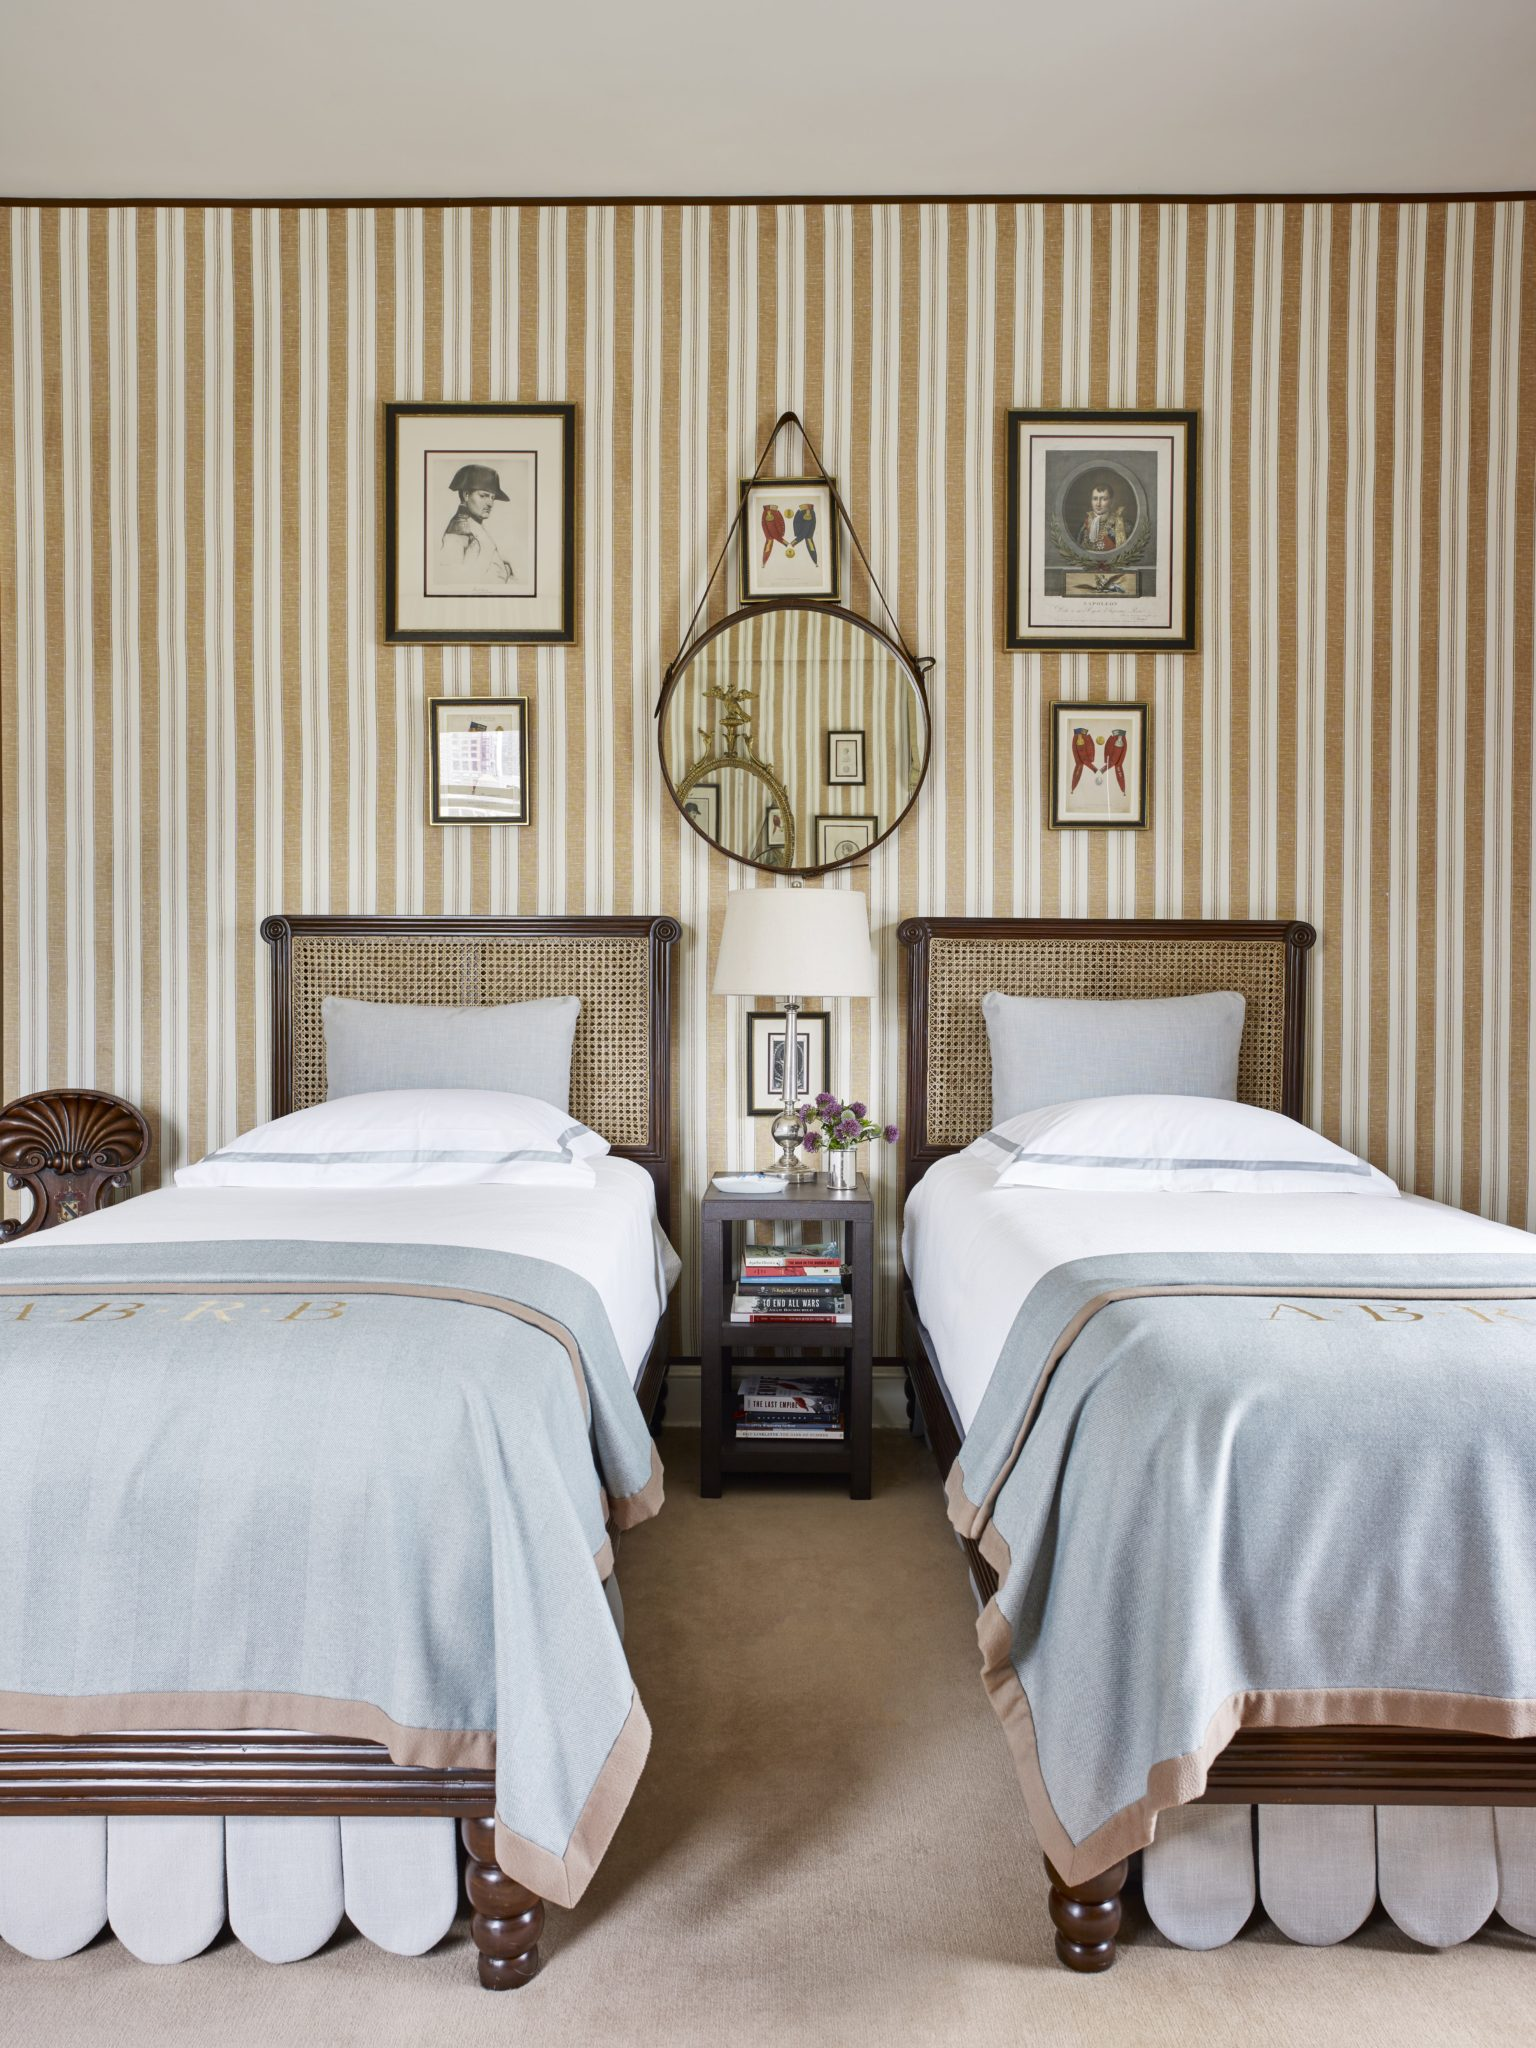 The guest room of a Fifth Avenue apartment designed for long-time clients houses a collection of Napoleon memorabilia and evokes traditional campaign style. The embroidered cashmere throws on the beds are from Loro Piana.